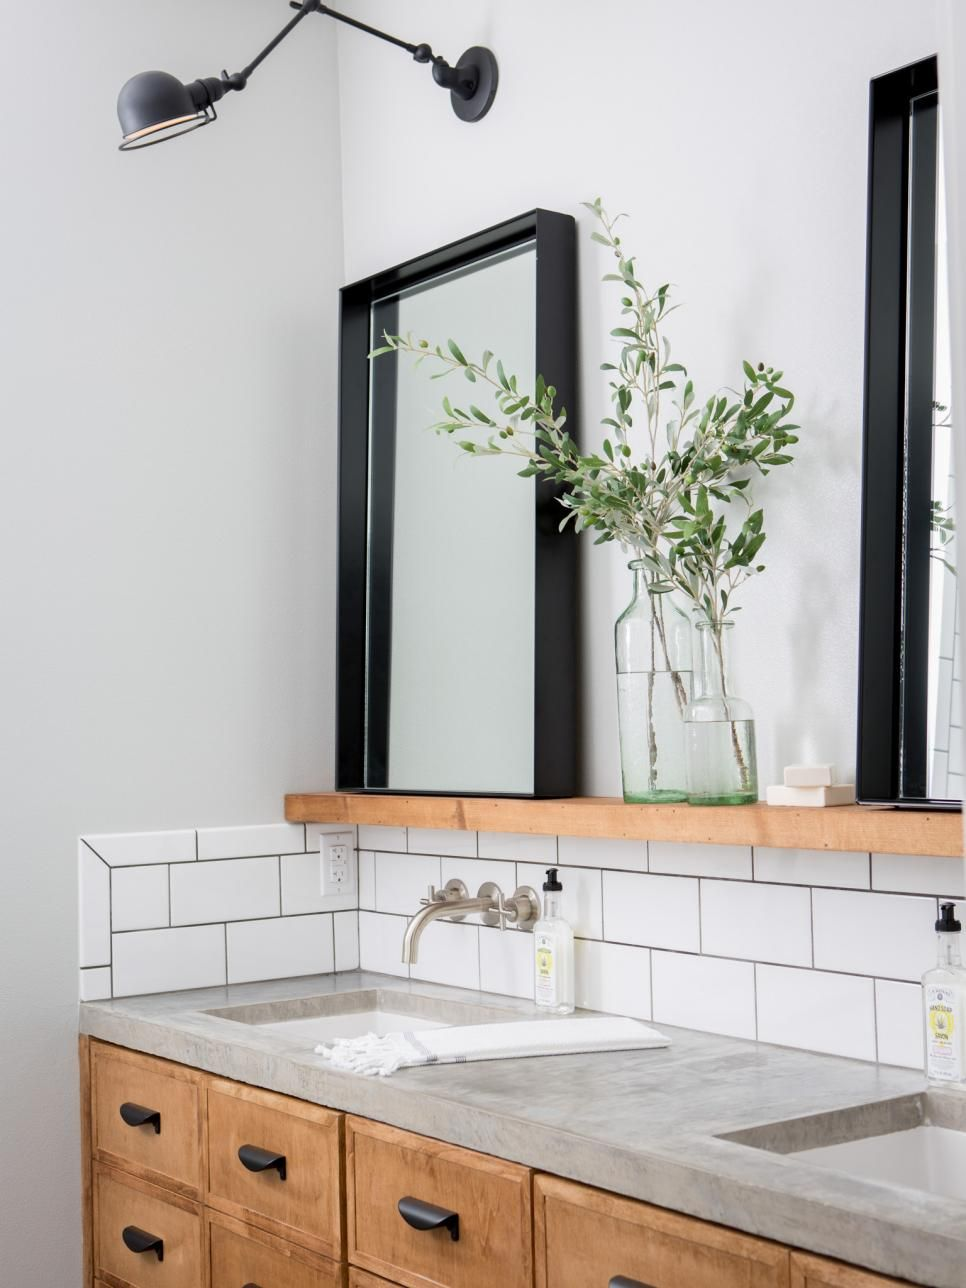 wooden vanity subway tile backsplash wooden shelf in the fixer upper season four finale chip and jo take on a project for some special clients and - Mirrored Bathroom Vanity